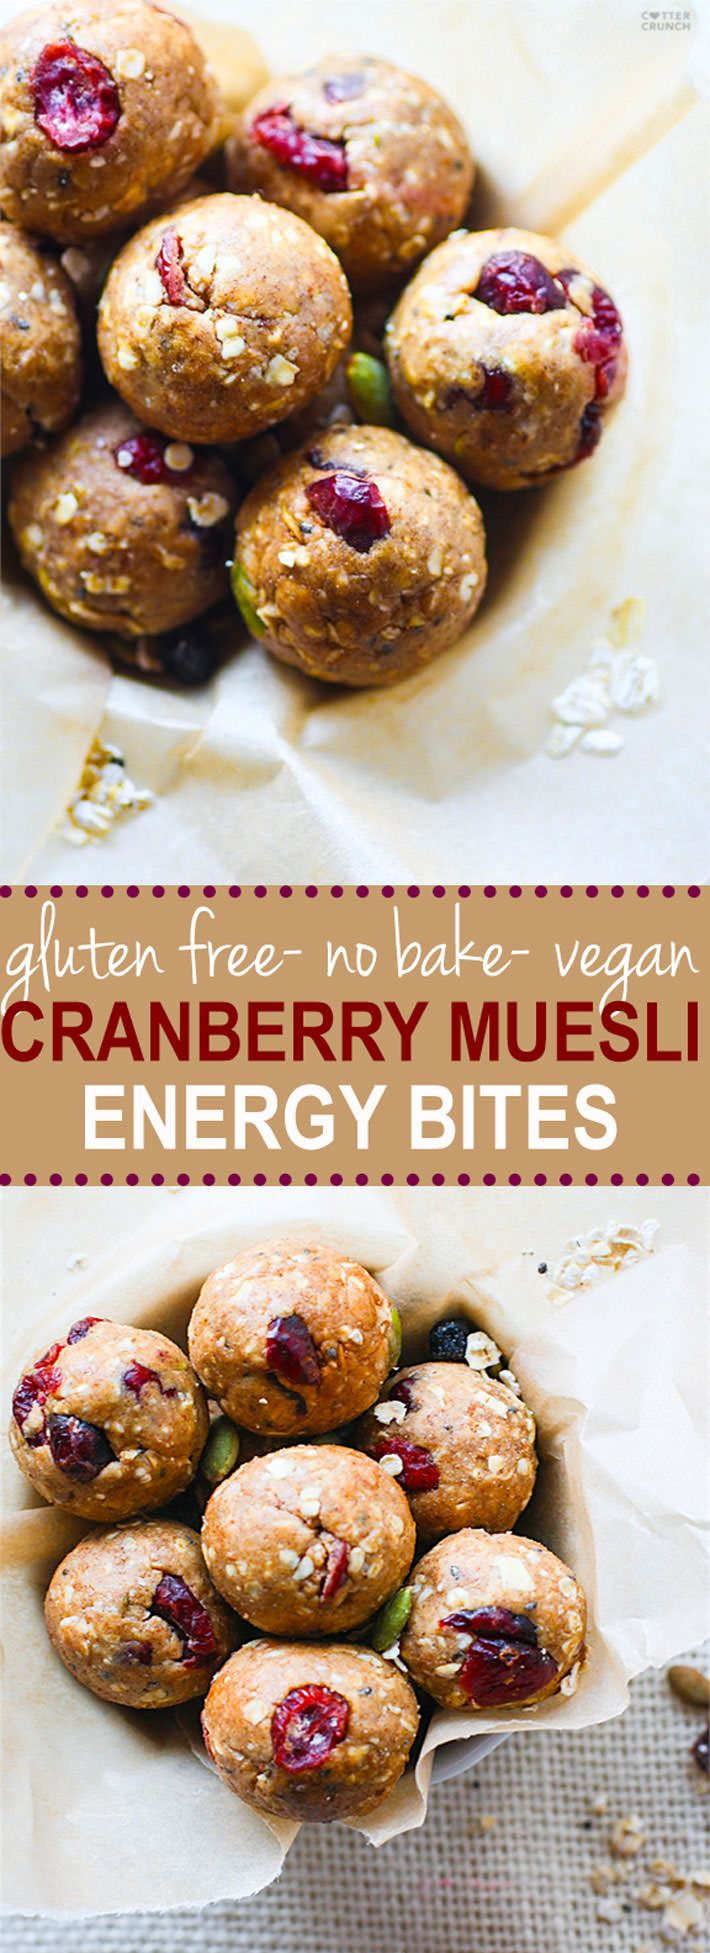 No Bake Gluten Free Muesli Energy Bites Recipe! This gluten free muesli bite recipe is super simple to make, vegan friendly, and a must make for healthy snacking. Homemade cranberry energy bites ready in no time! @cottercrunch  @vitamix